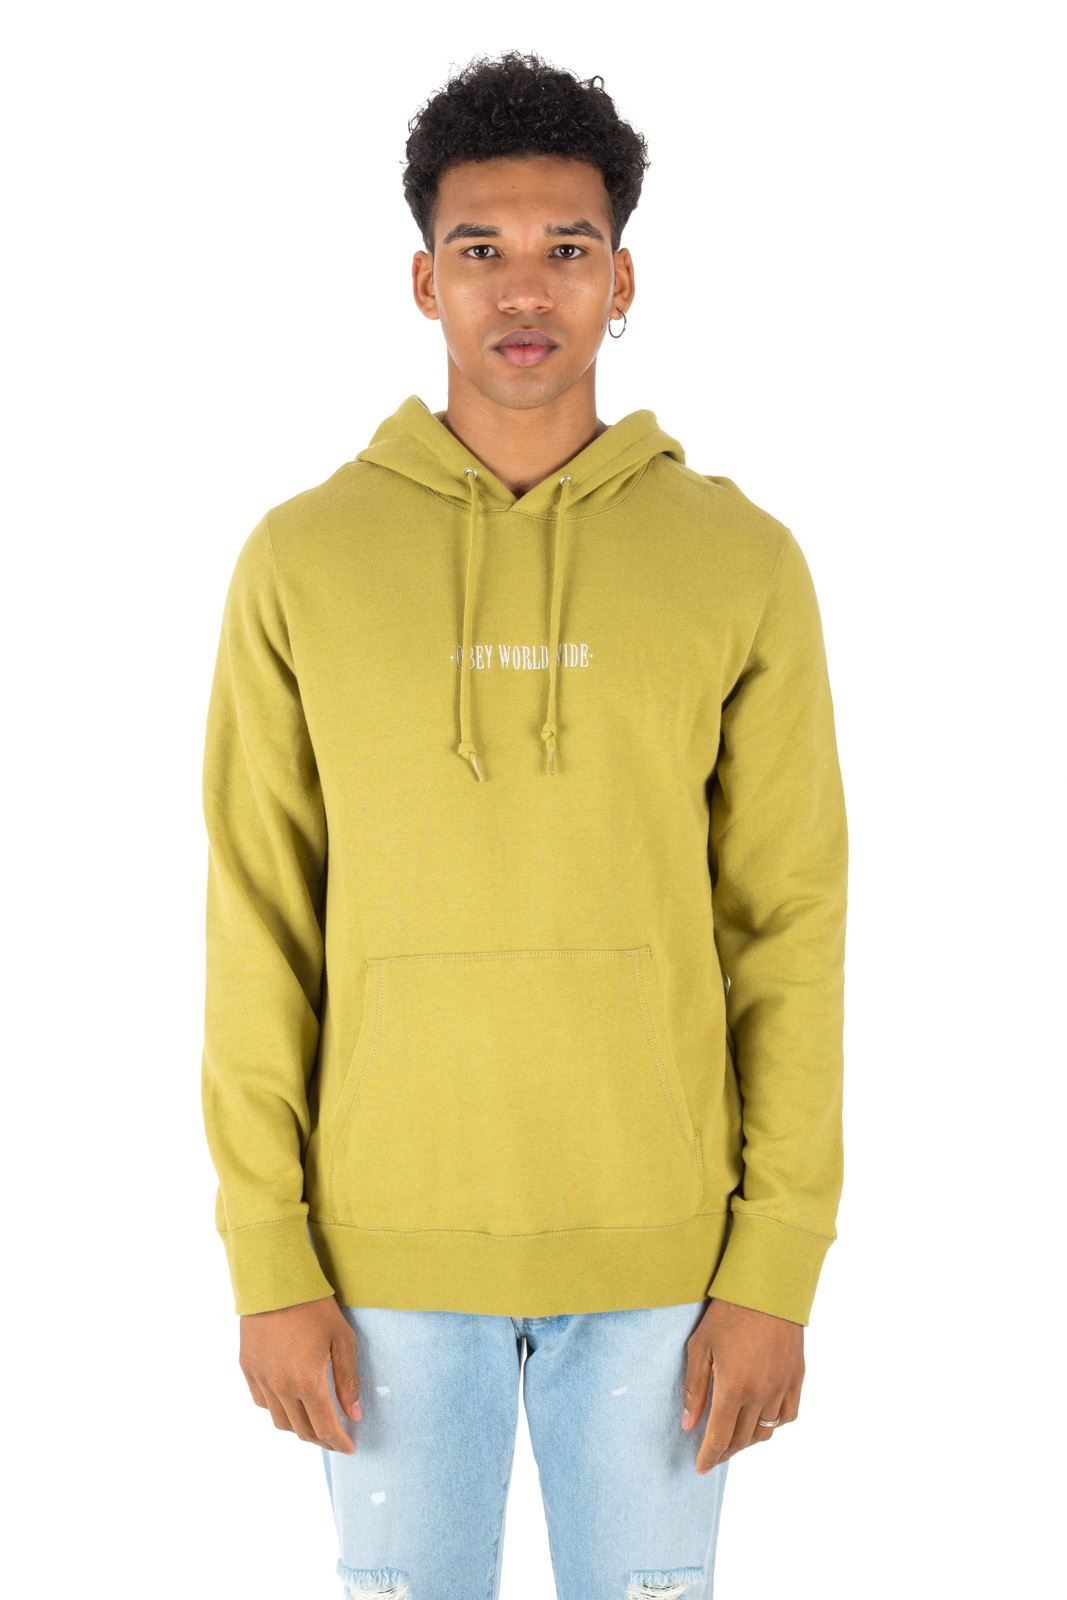 Obey - Sweatshirt New Times Green